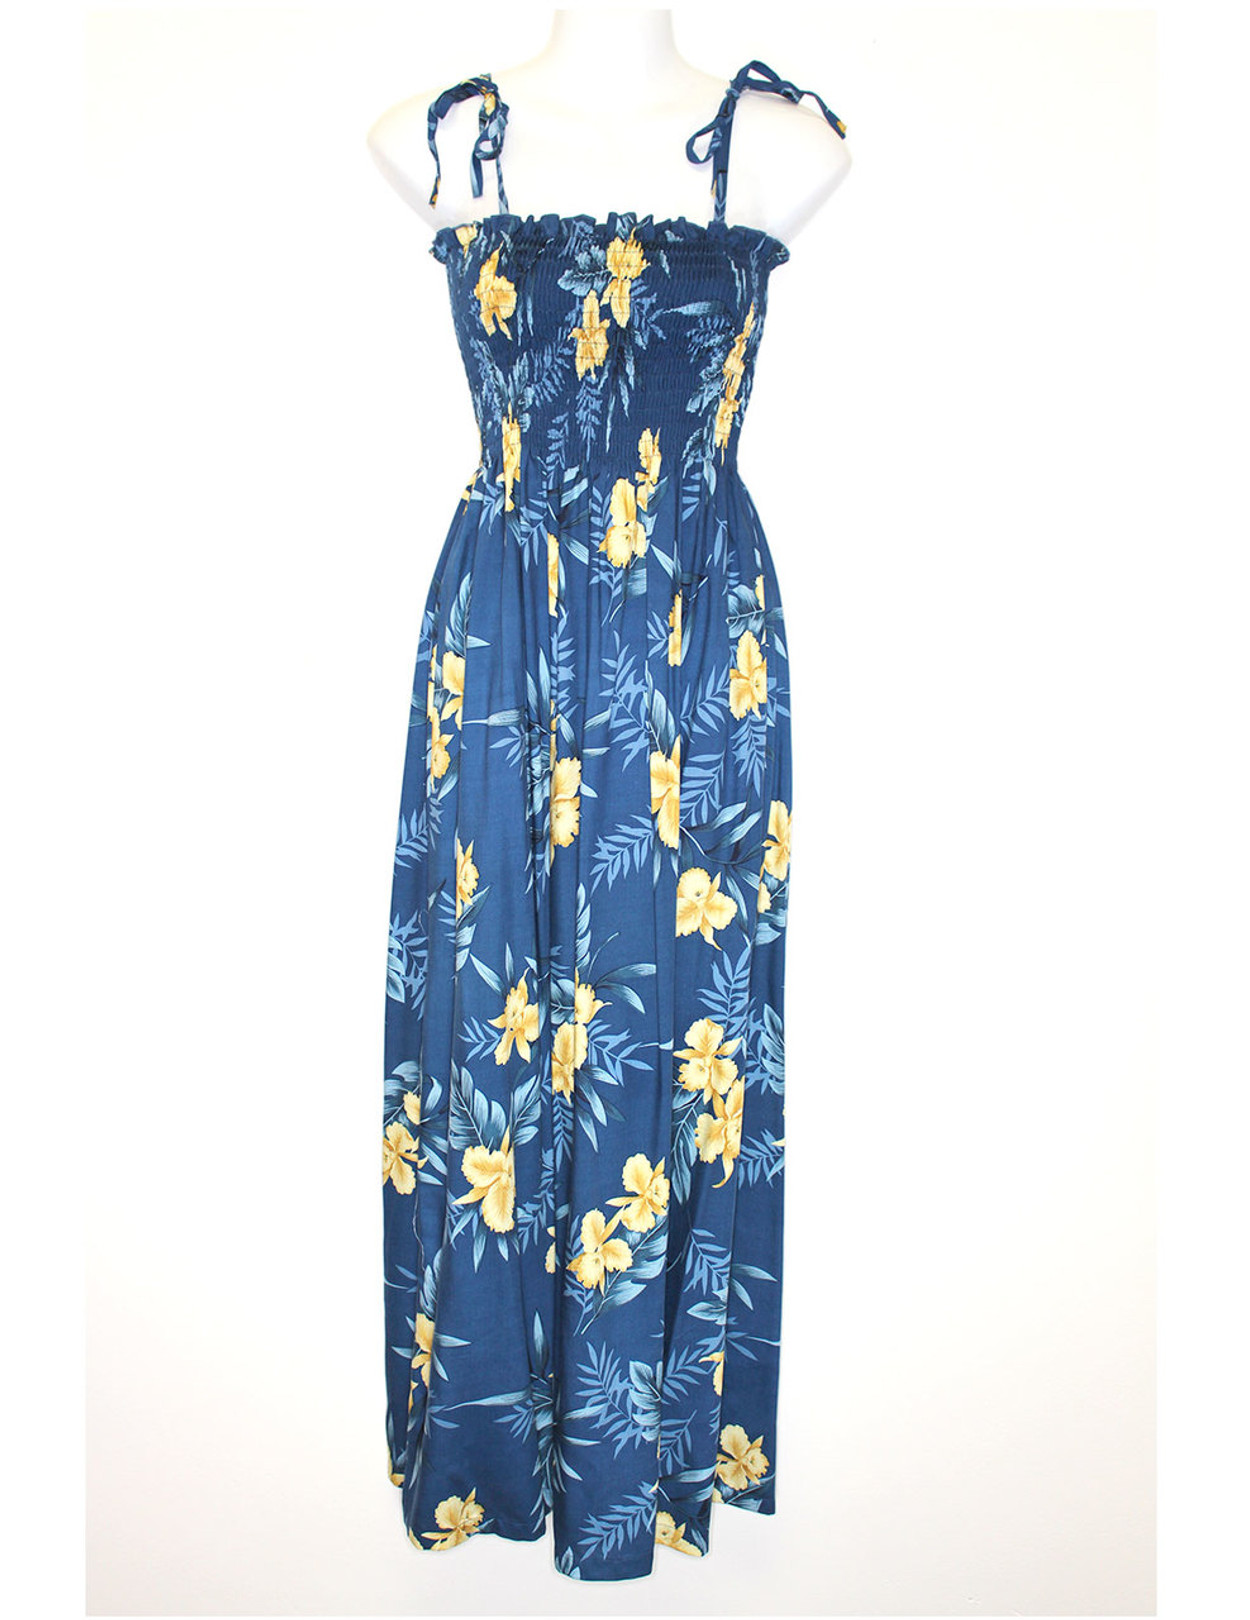 b480ada07a4a Okalani Long Maxi Smock Top Spaghetti Dress To Wear with Straps or  Strapless 100% Rayon